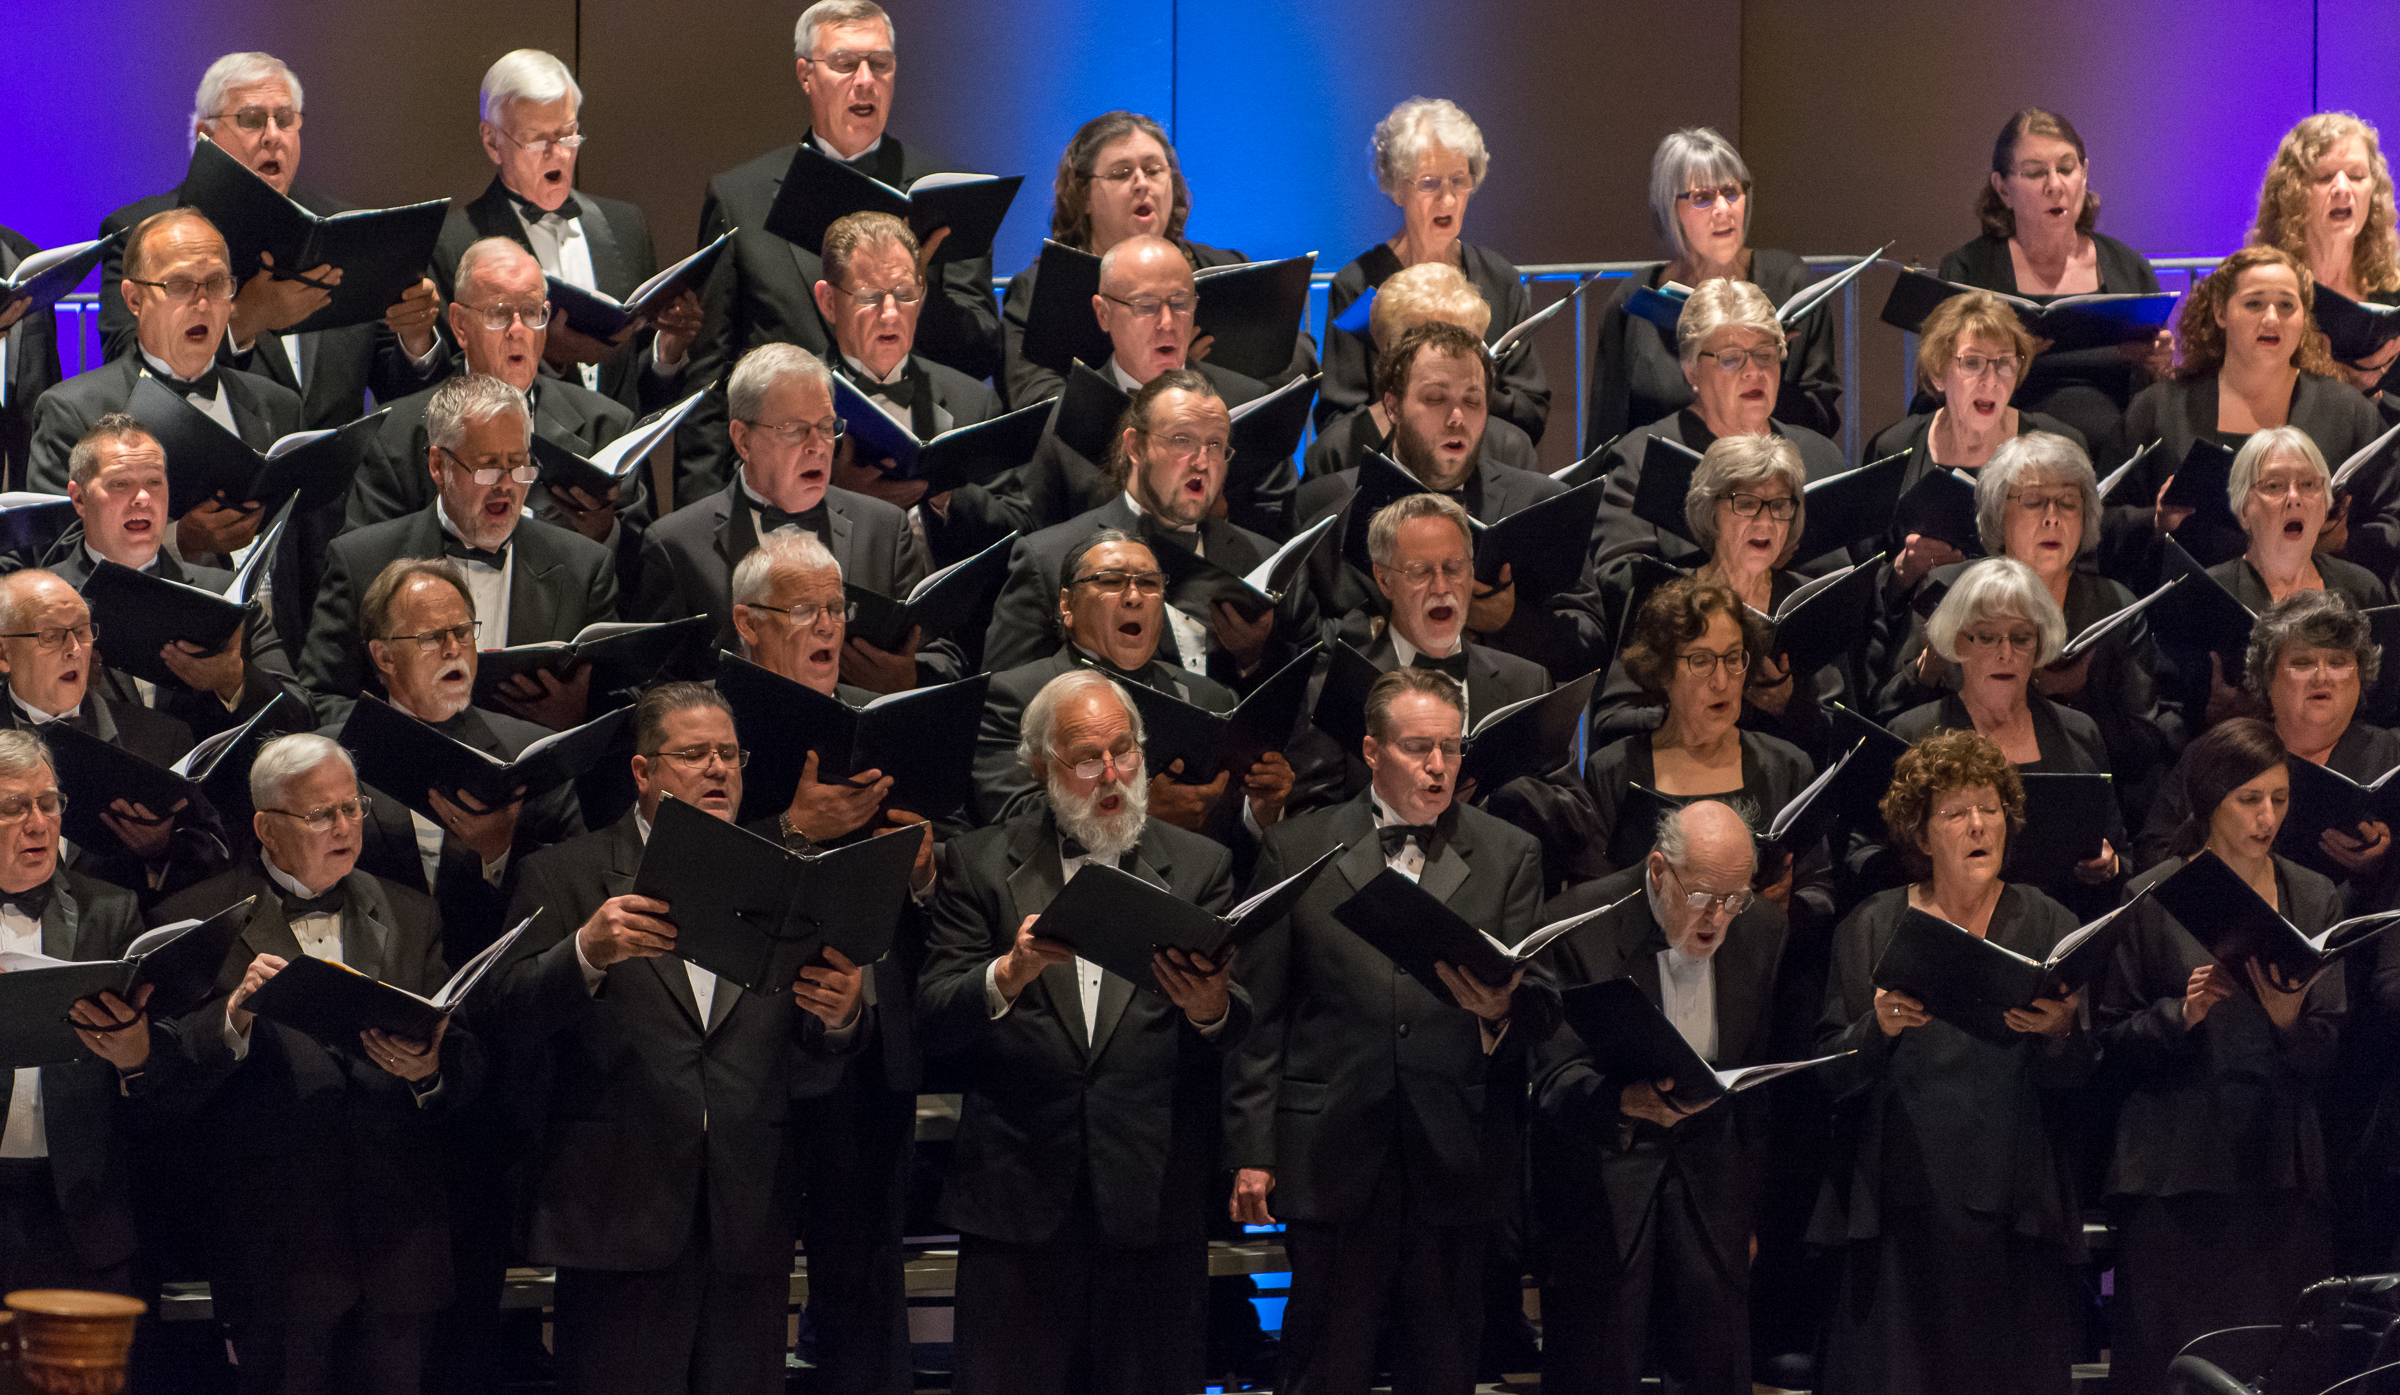 Carmina Burana - Saturday, May 2, 2019 - 7:30 pm*Gallo Center For the ArtsDavid Lockington, conductorTickets Starting at $19($12 Student Tickets are available for all classic concerts.)